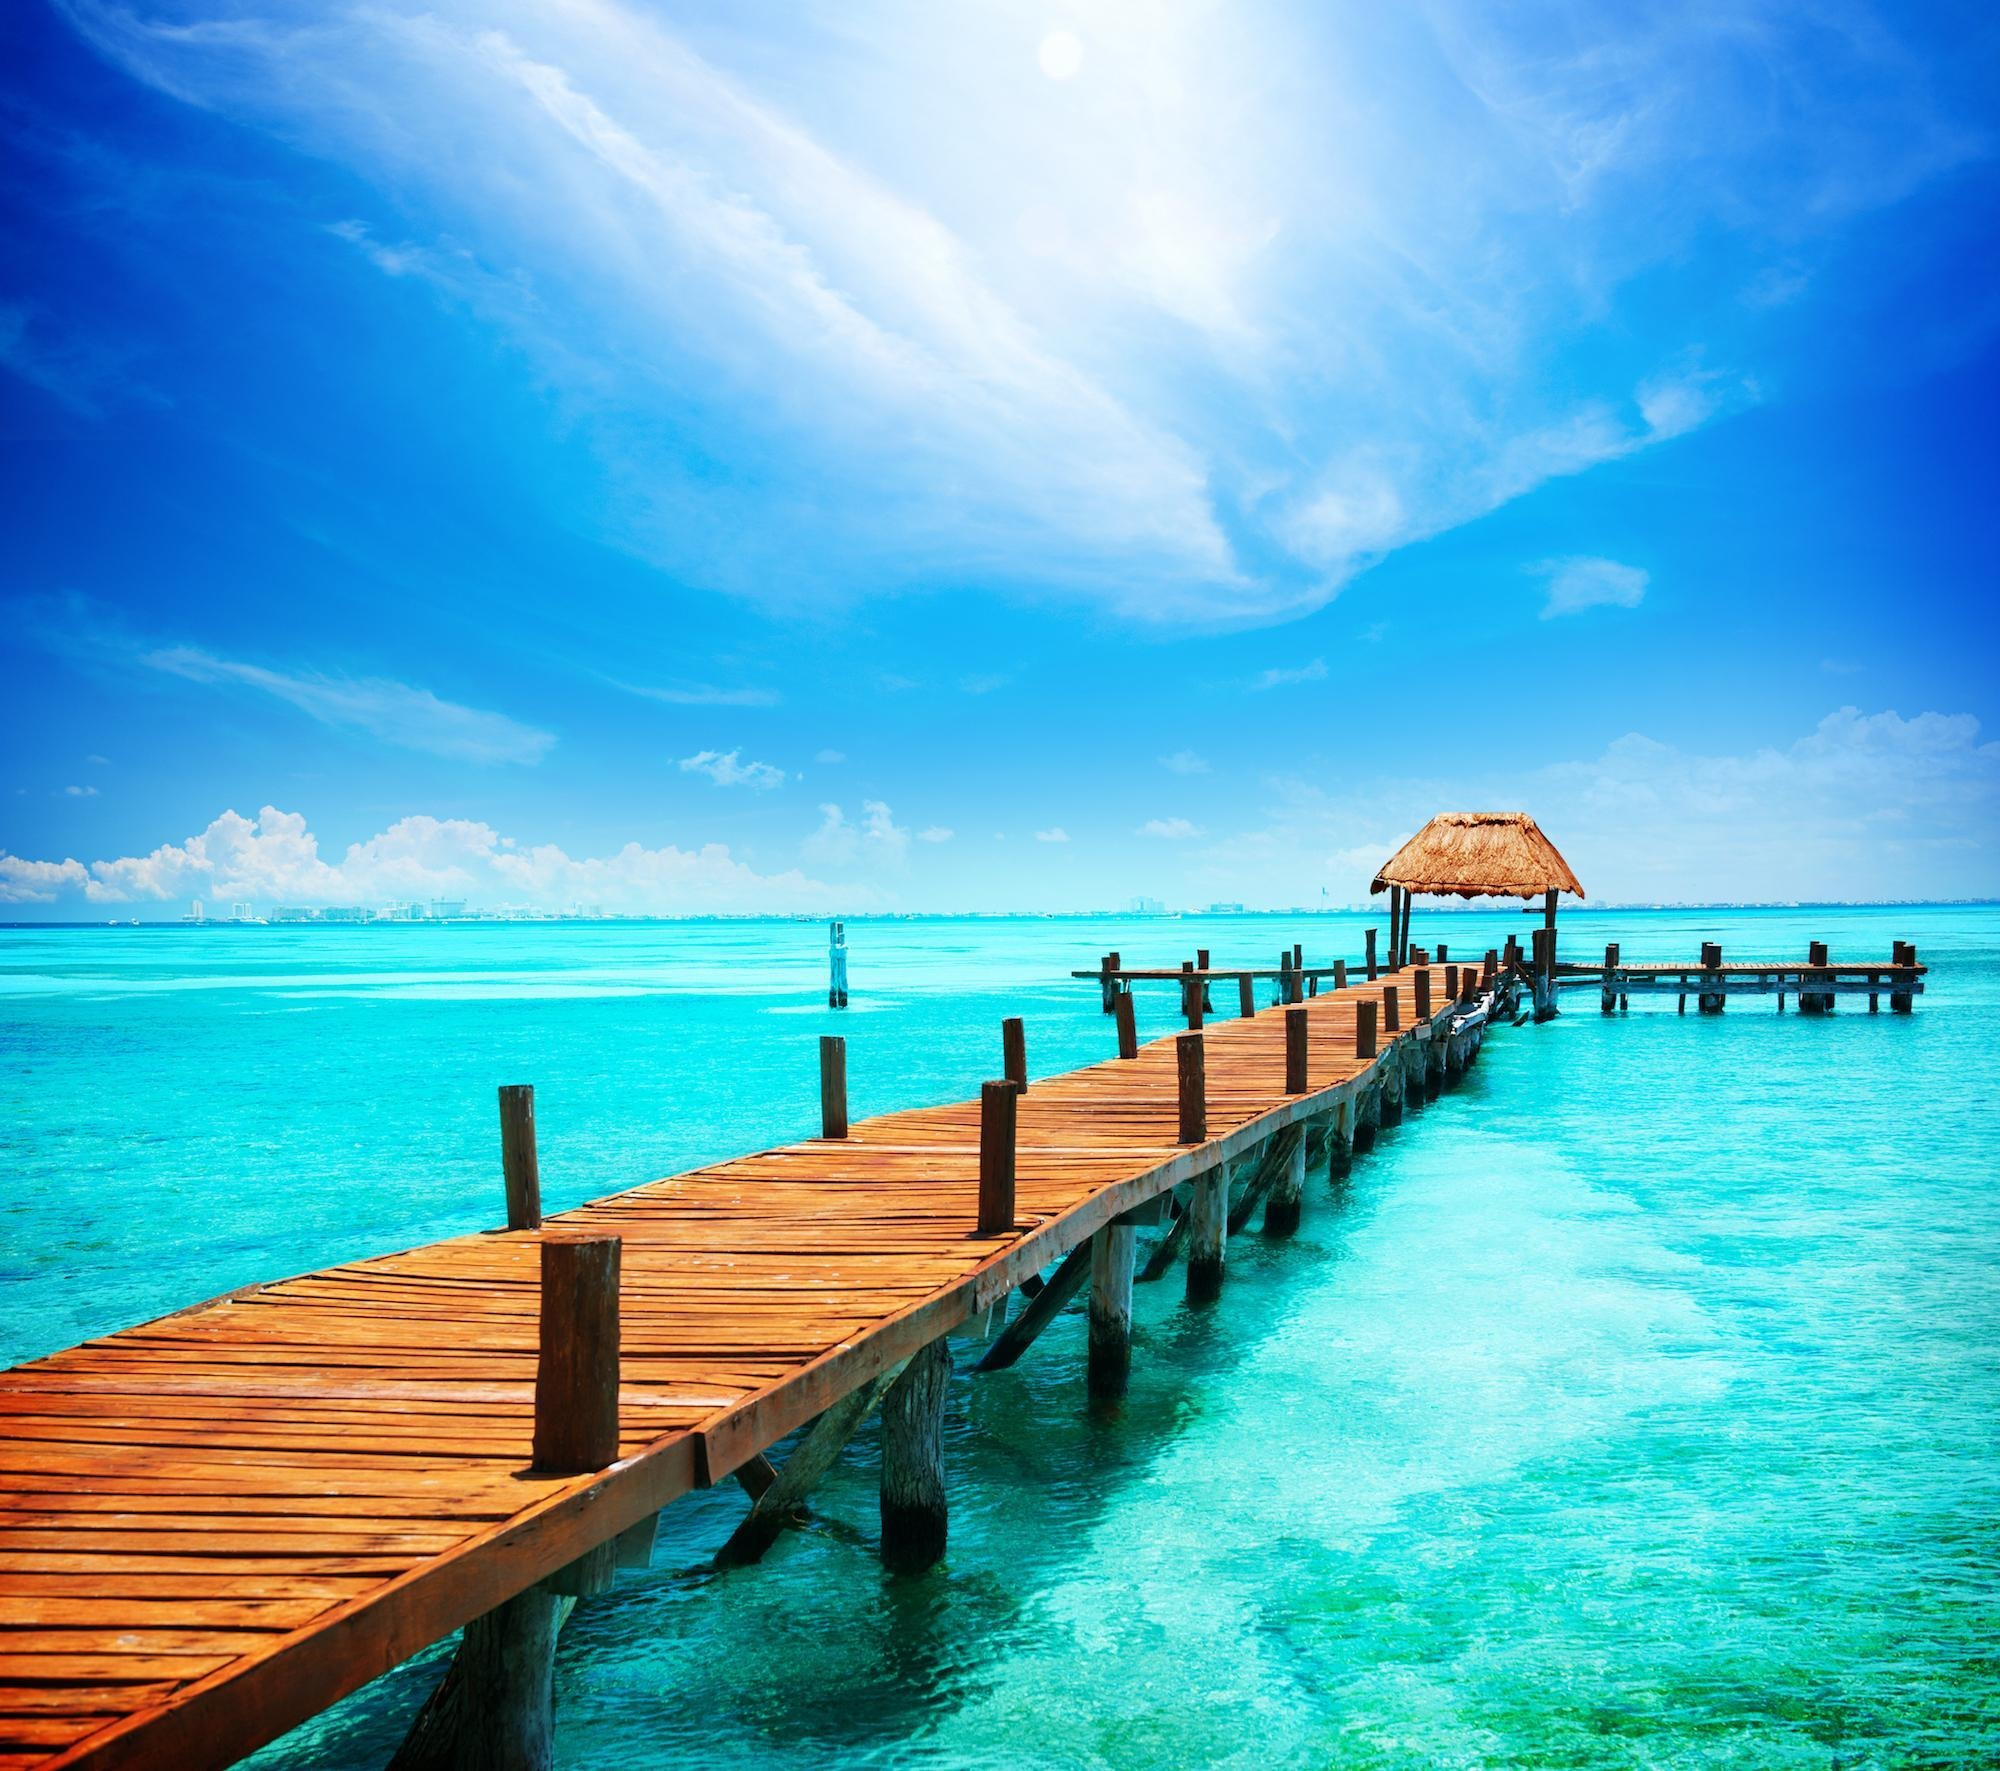 How to Spend 2 Days in Cozumel